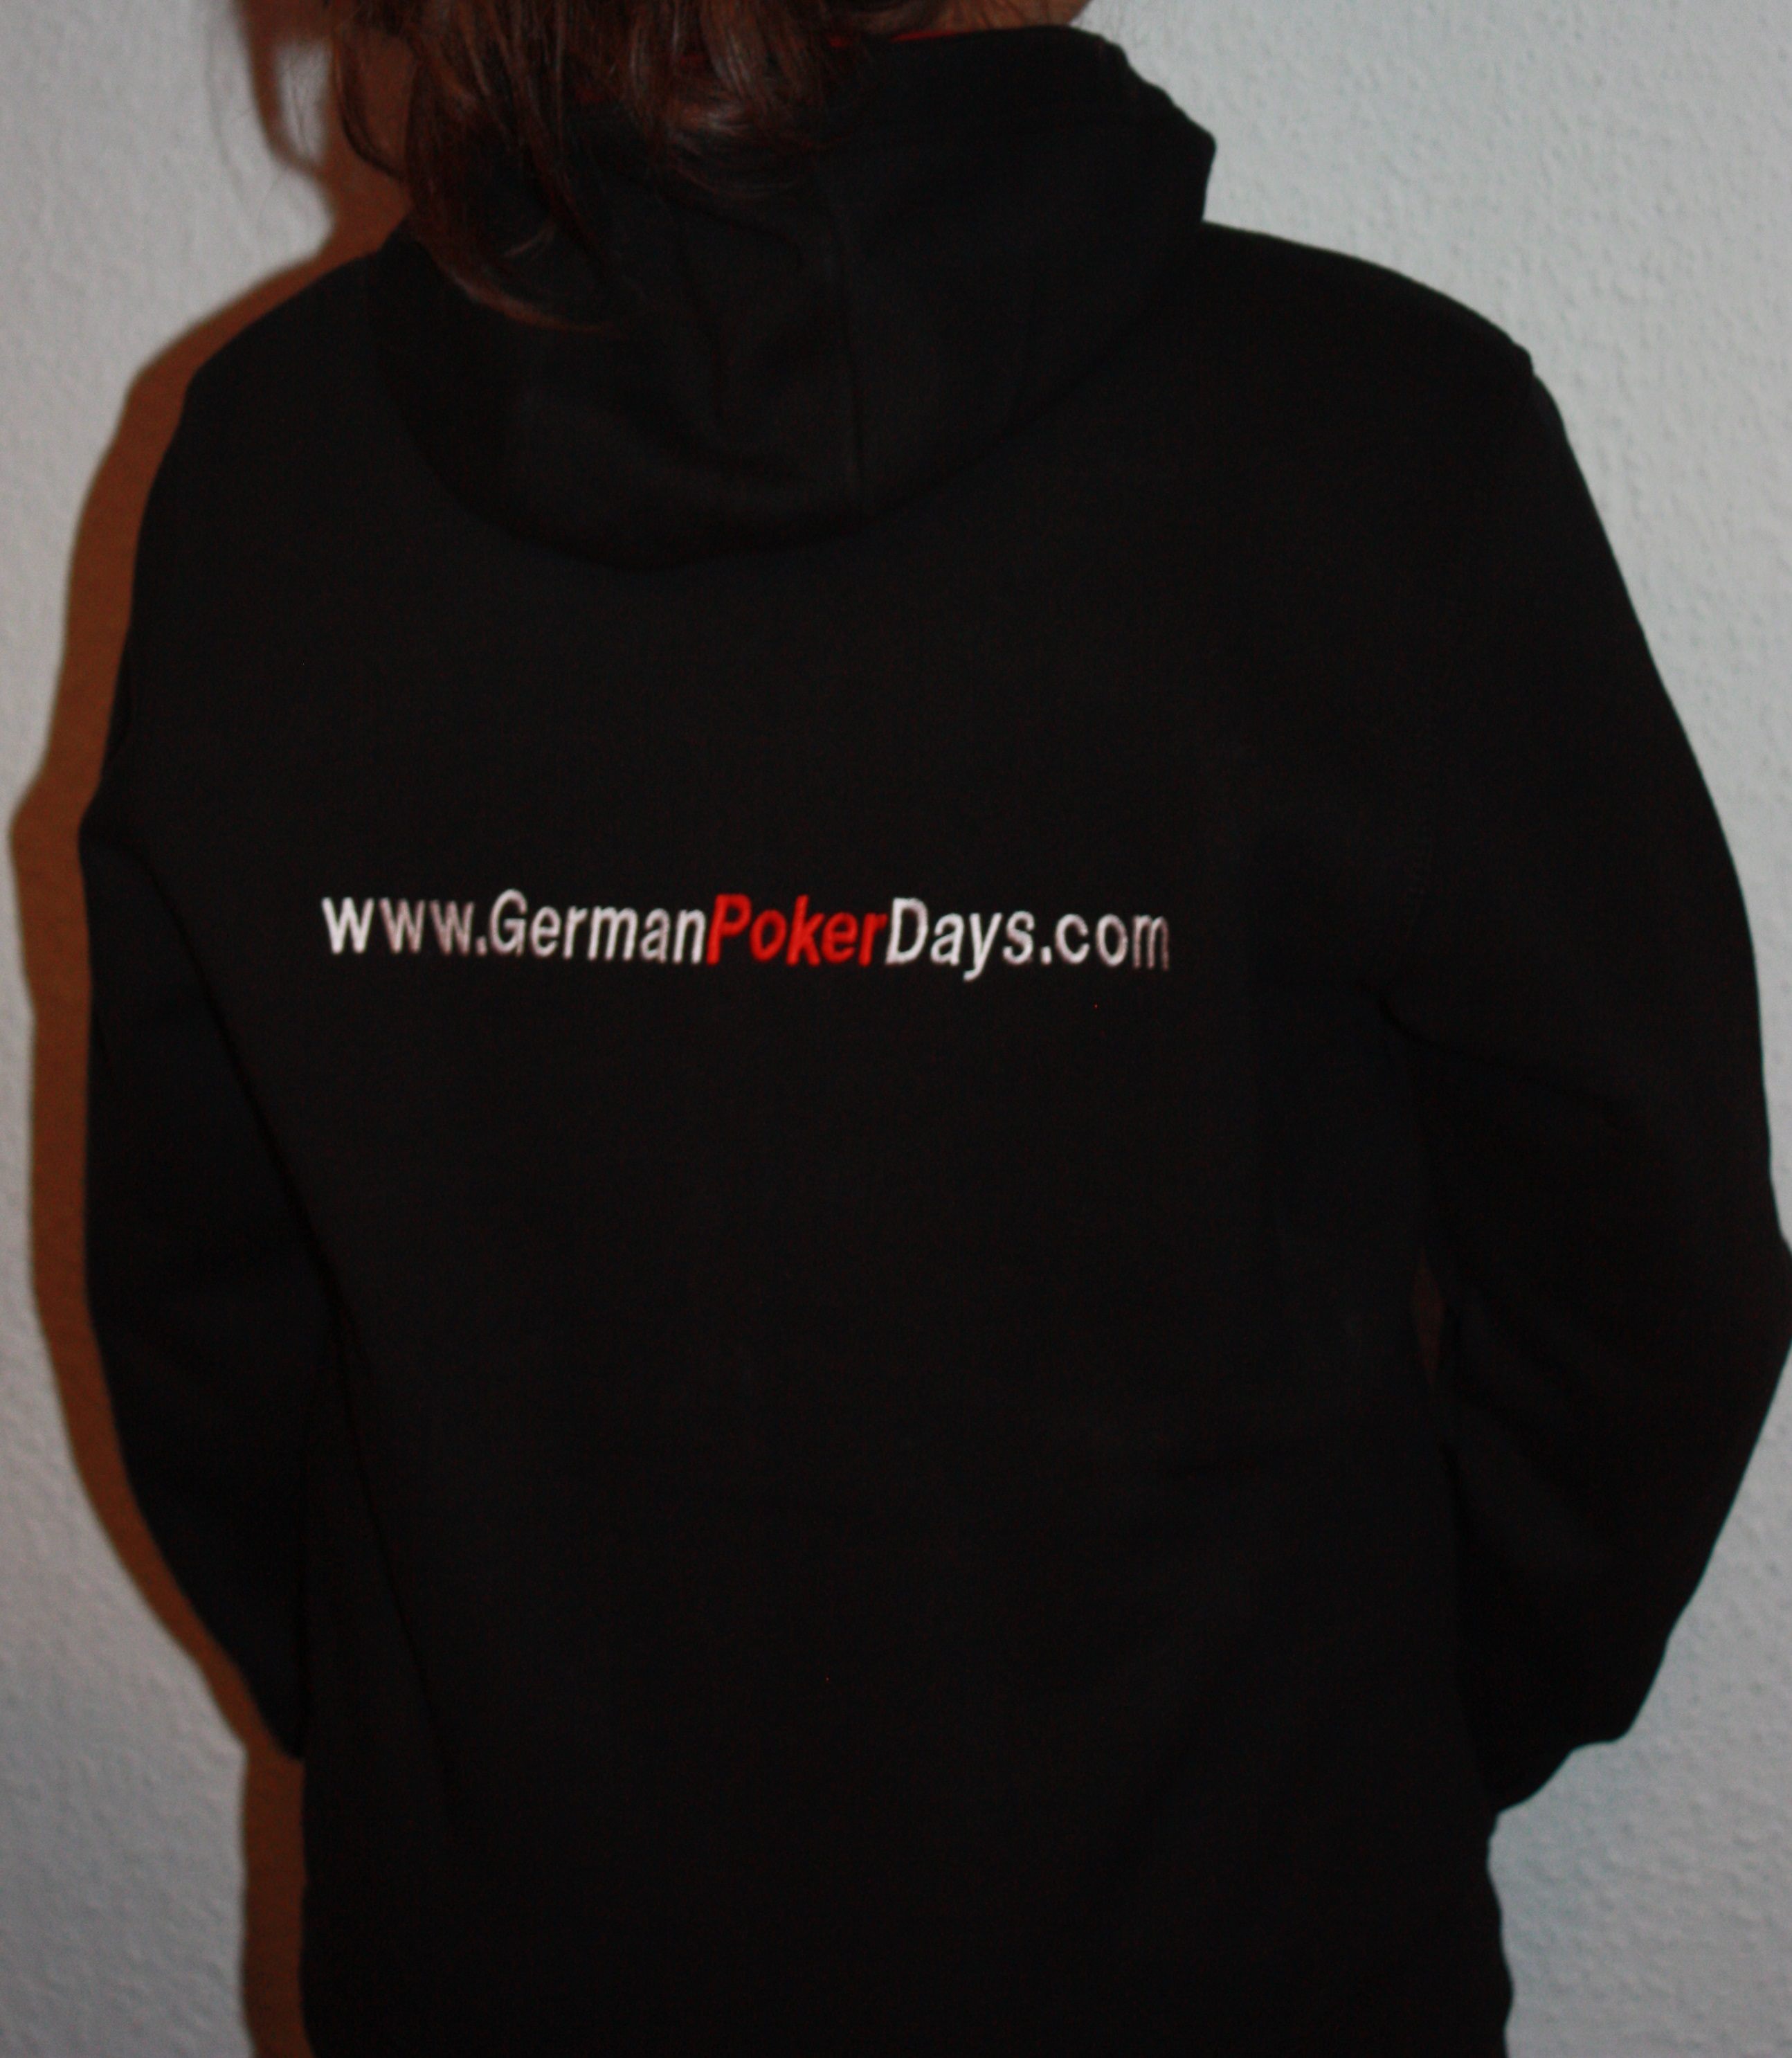 German Poker Days Zip Hoodie